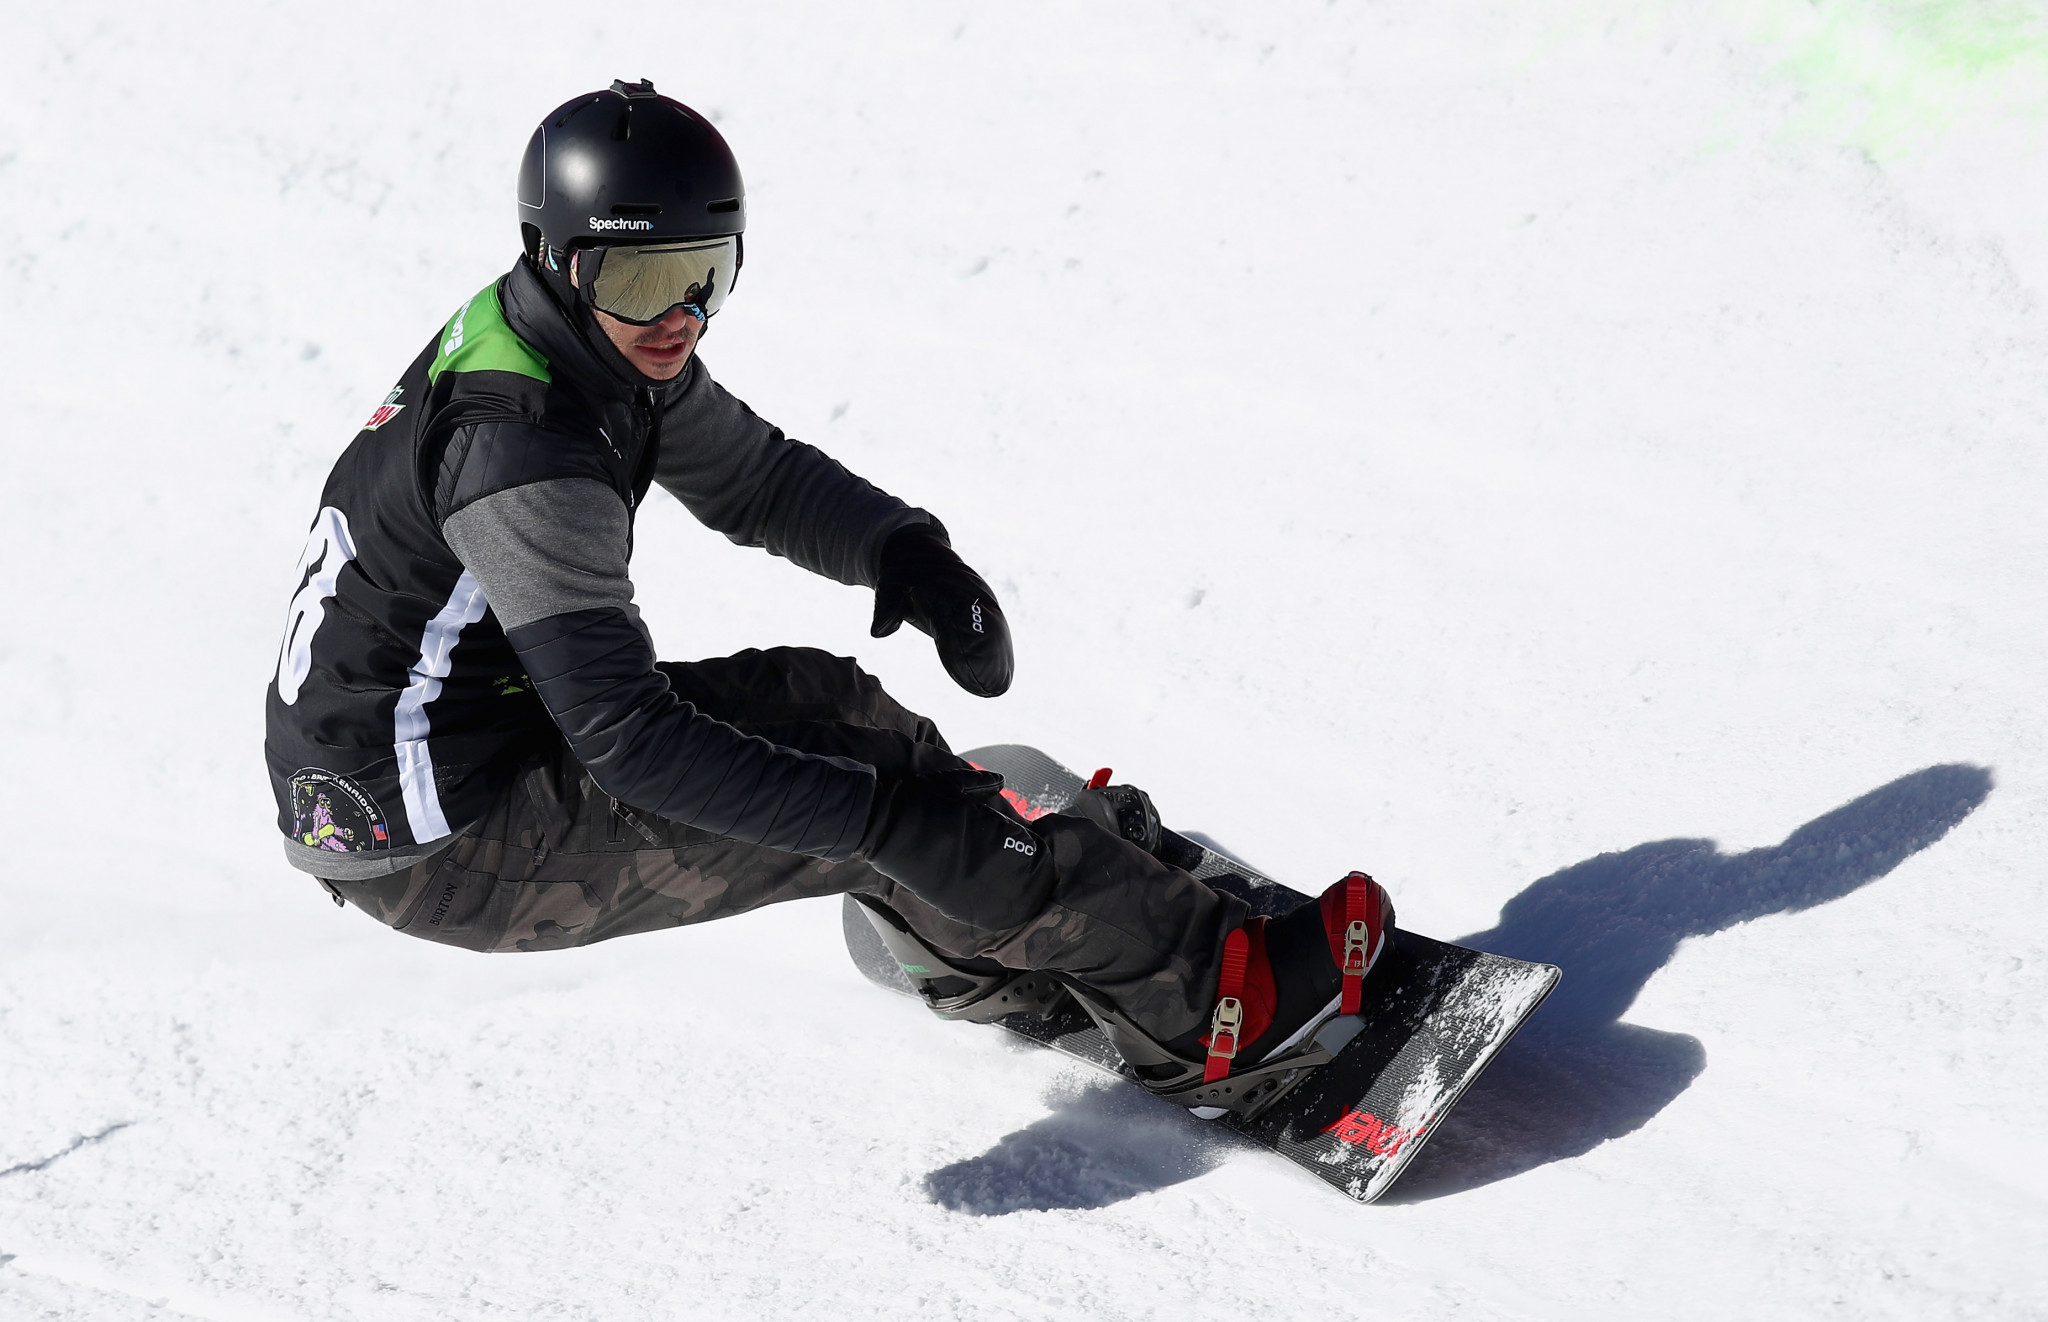 Americans eye overall World Para Snowboard World Cup titles in Big White